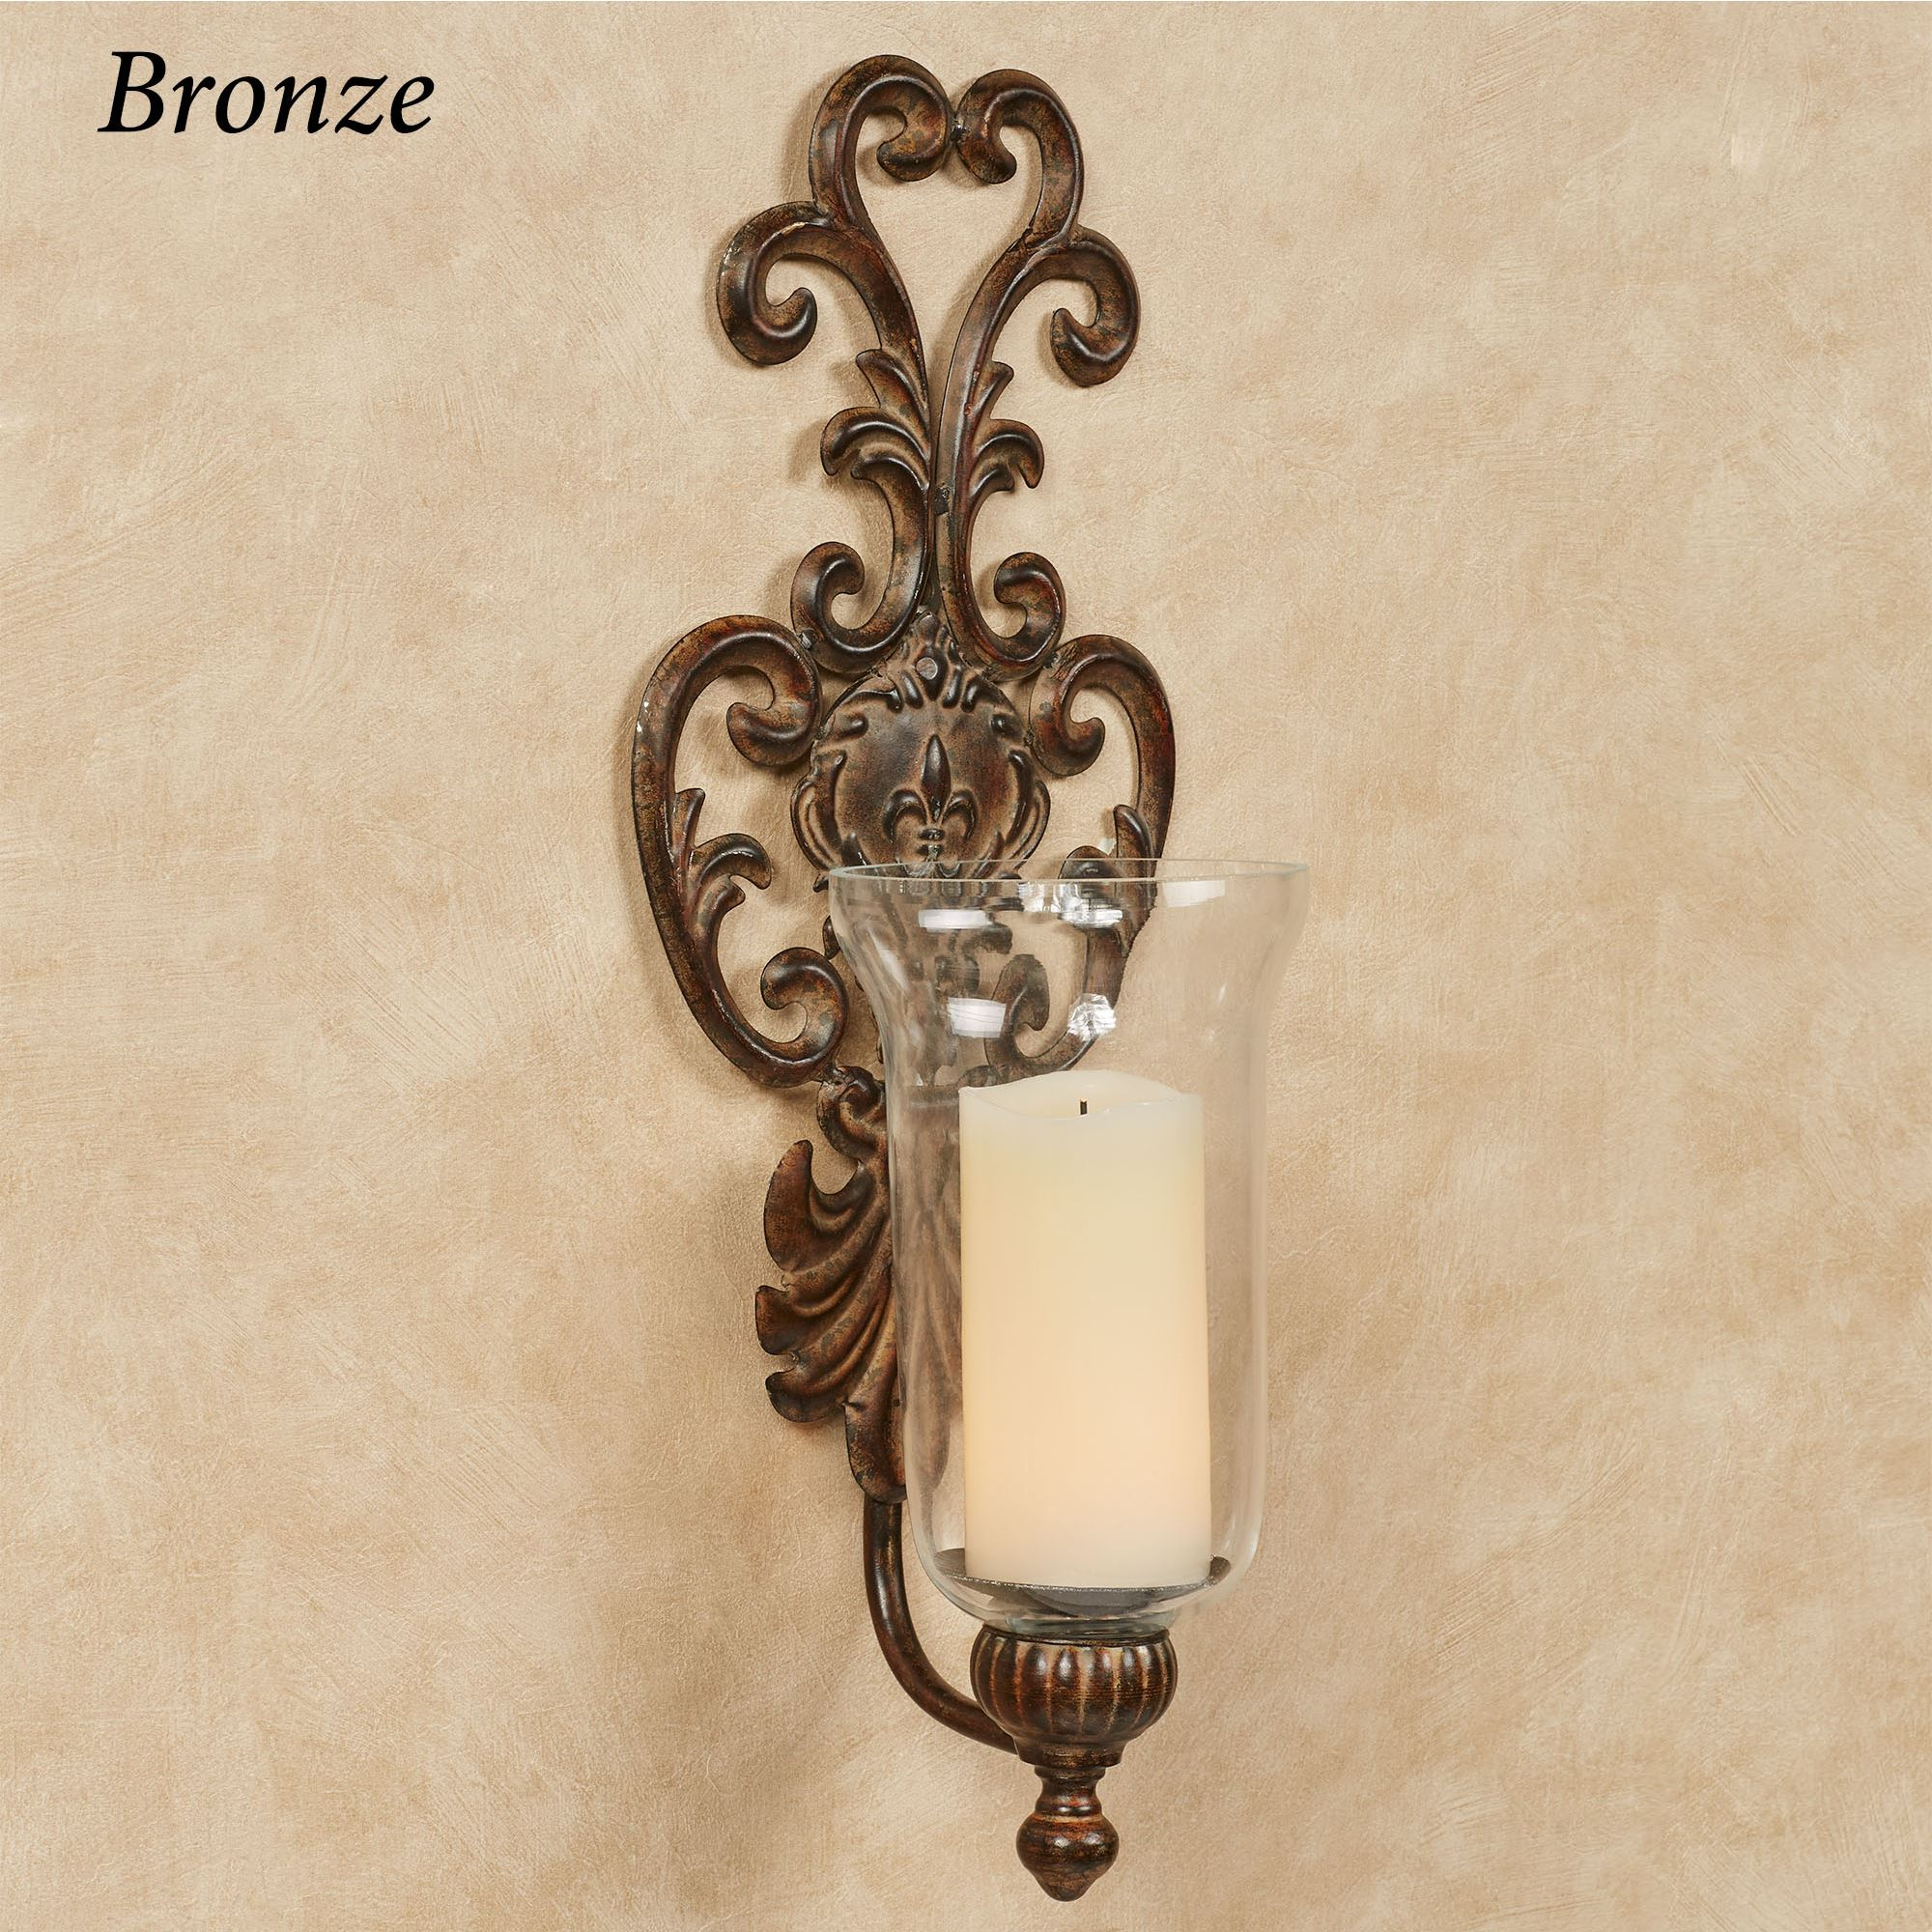 iron home wall sconce holder traditional pillows decor pdx candle darby wayfair reviews holders sconces co